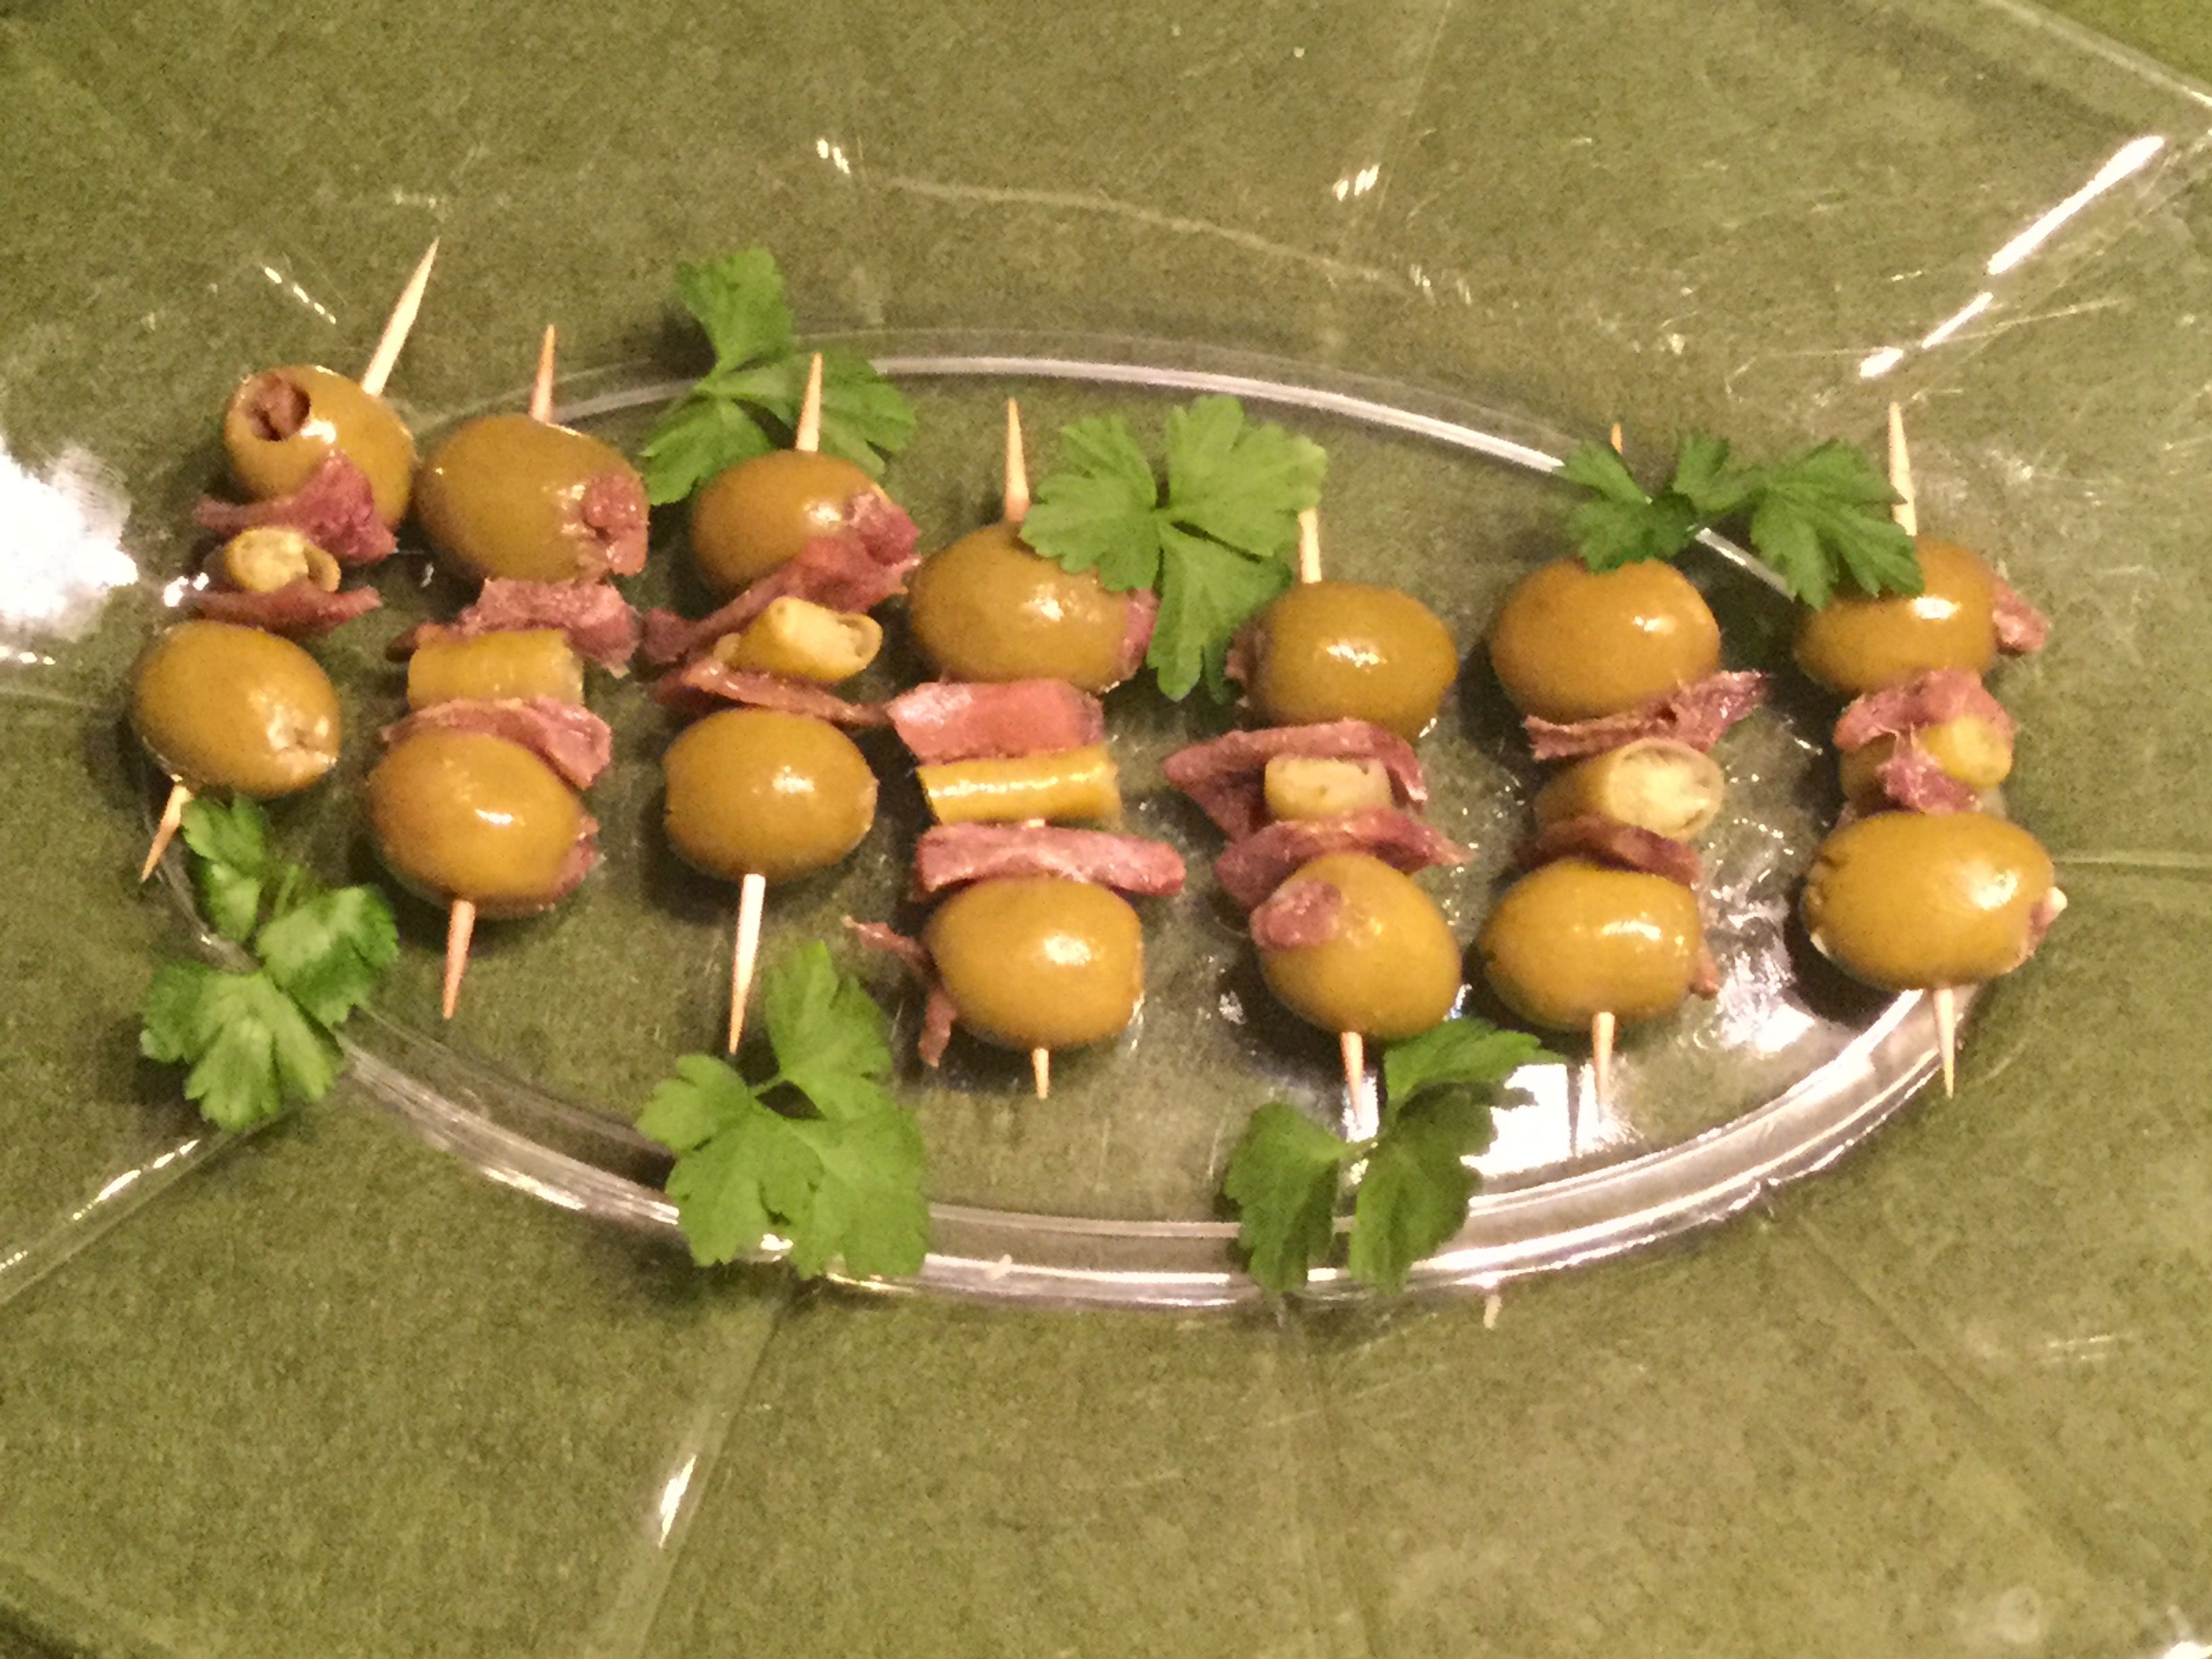 Pintxo Gilda (Basque Pepper, Olive, and Anchovy Skewers) AllrecipesPhoto